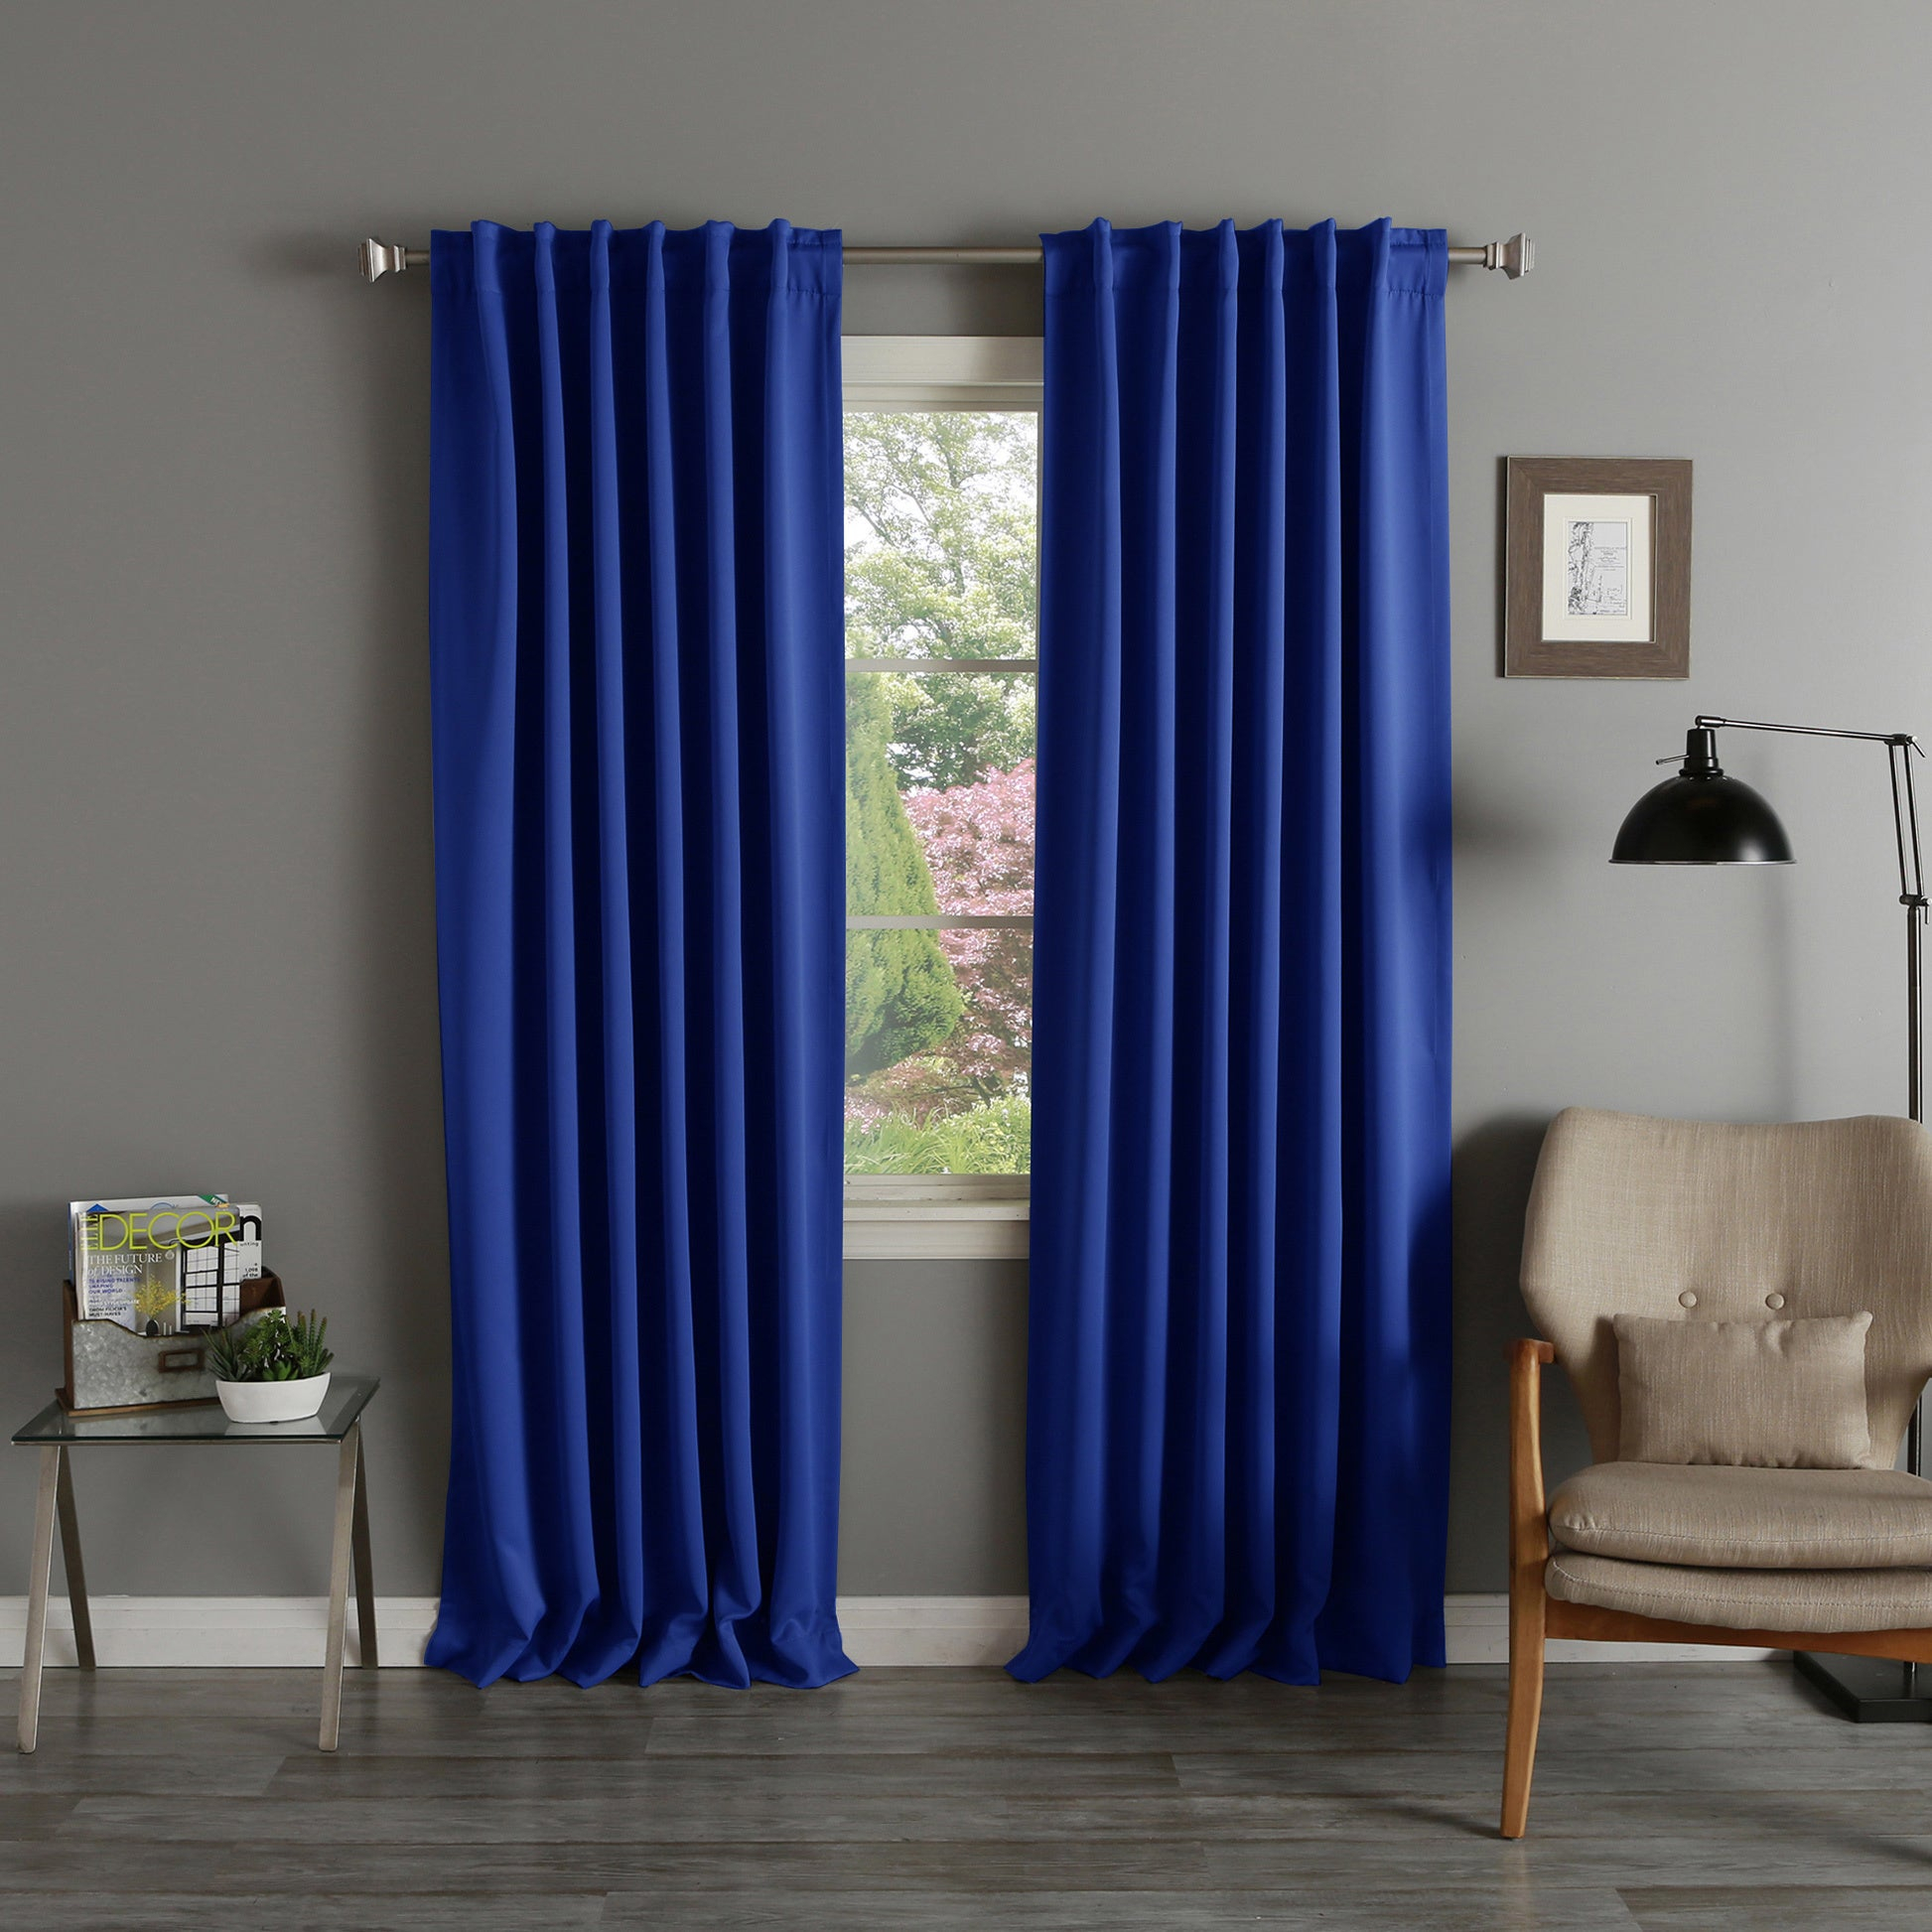 Aurora Home Thermal Rod Pocket 96 Inch Blackout Curtain Panel Pair – 52 X 96 Throughout Thermal Rod Pocket Blackout Curtain Panel Pairs (View 2 of 30)